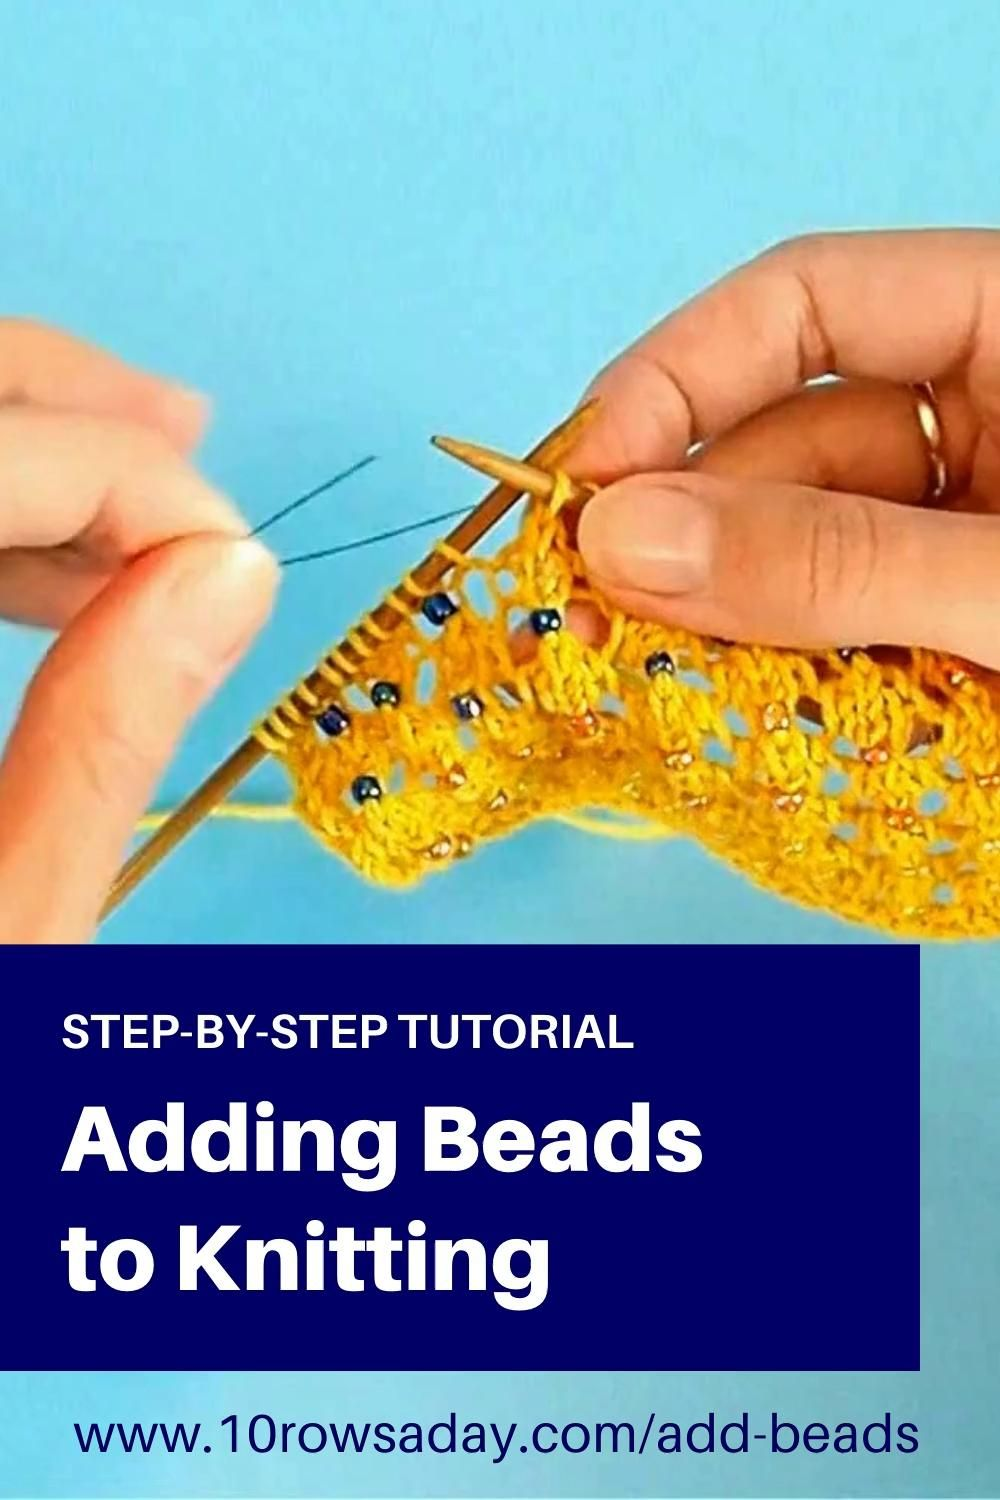 Easy Way to Add Beads to a Knitting Project